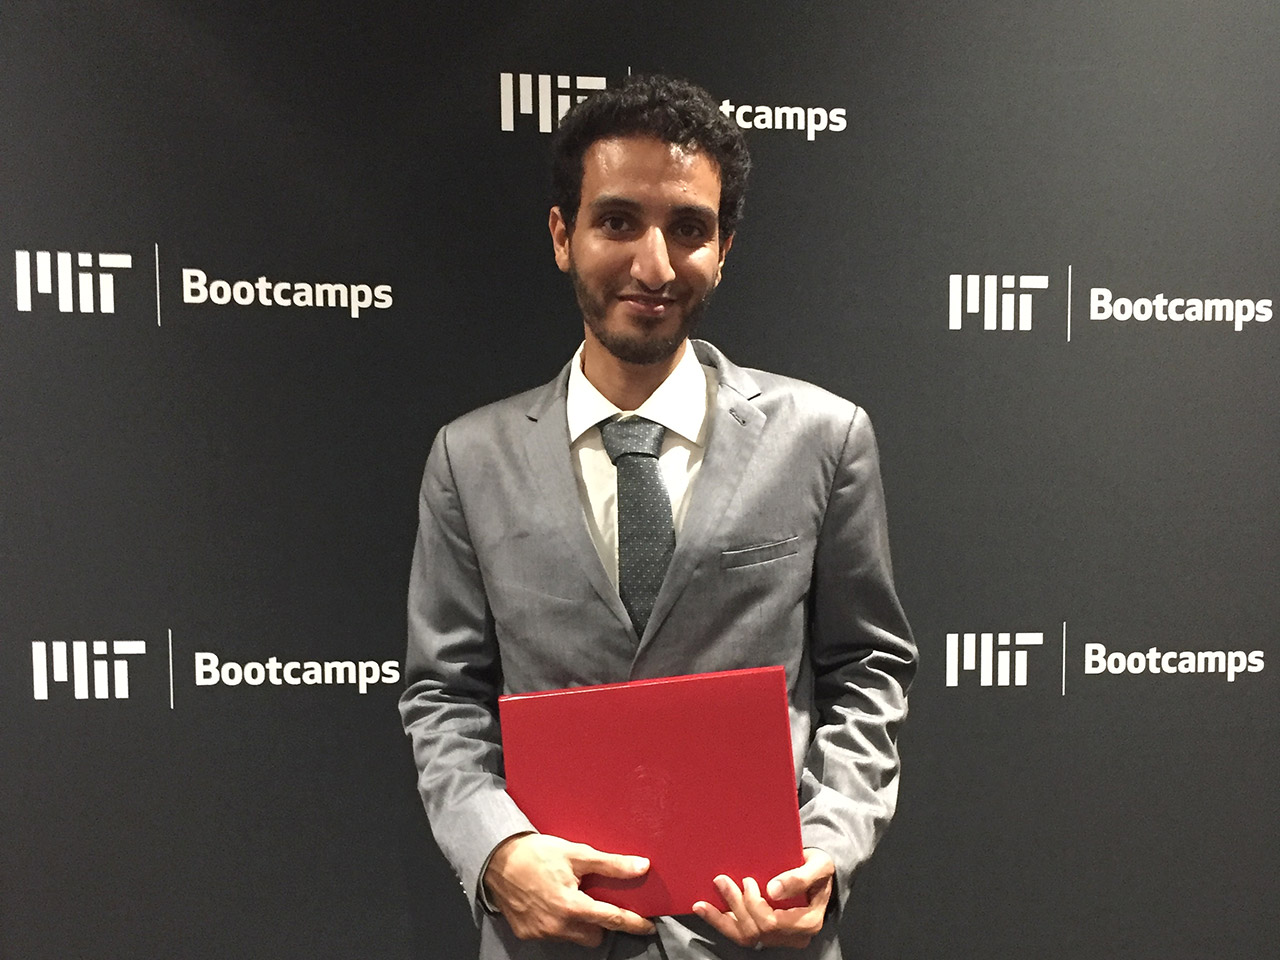 Mohammed Baaoum at MIT Innovation & Entrepreneurship Bootcamp